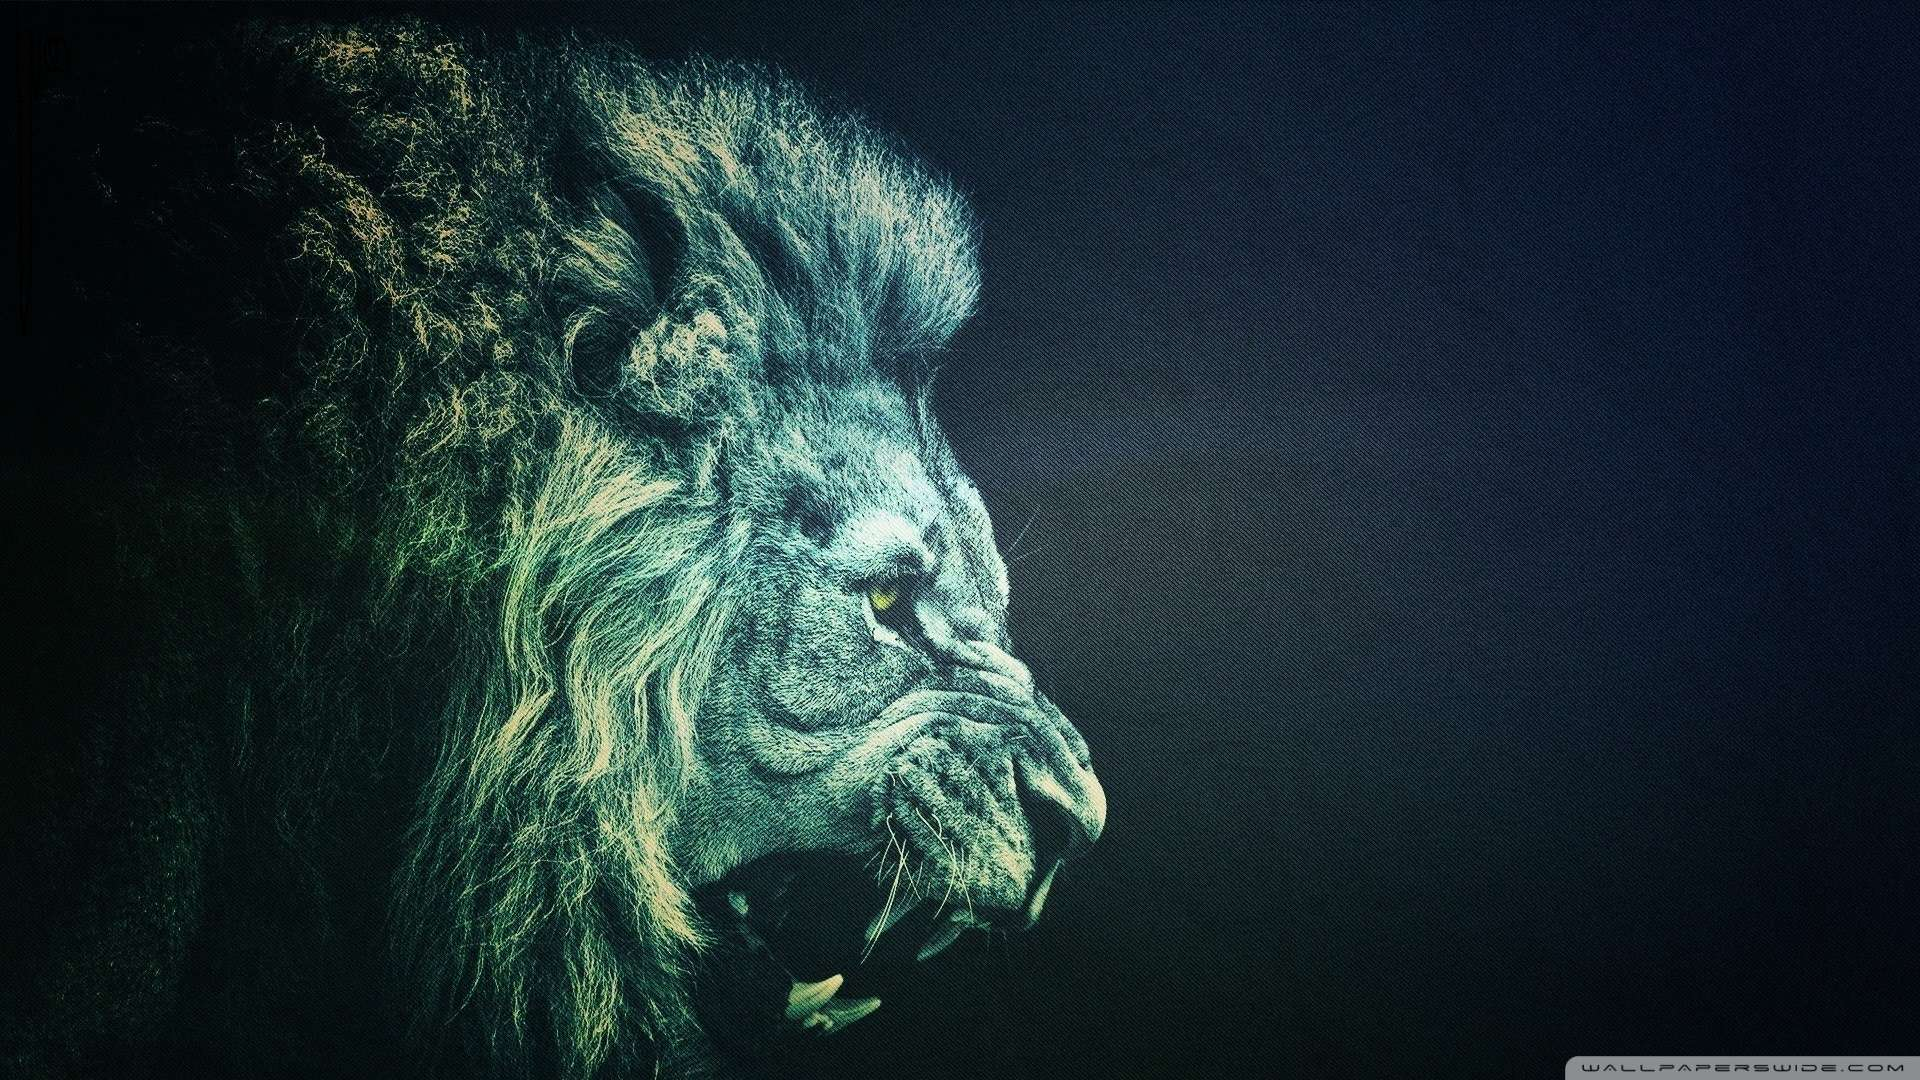 Lion Wallpaper HD 1080P - WallpaperSafari